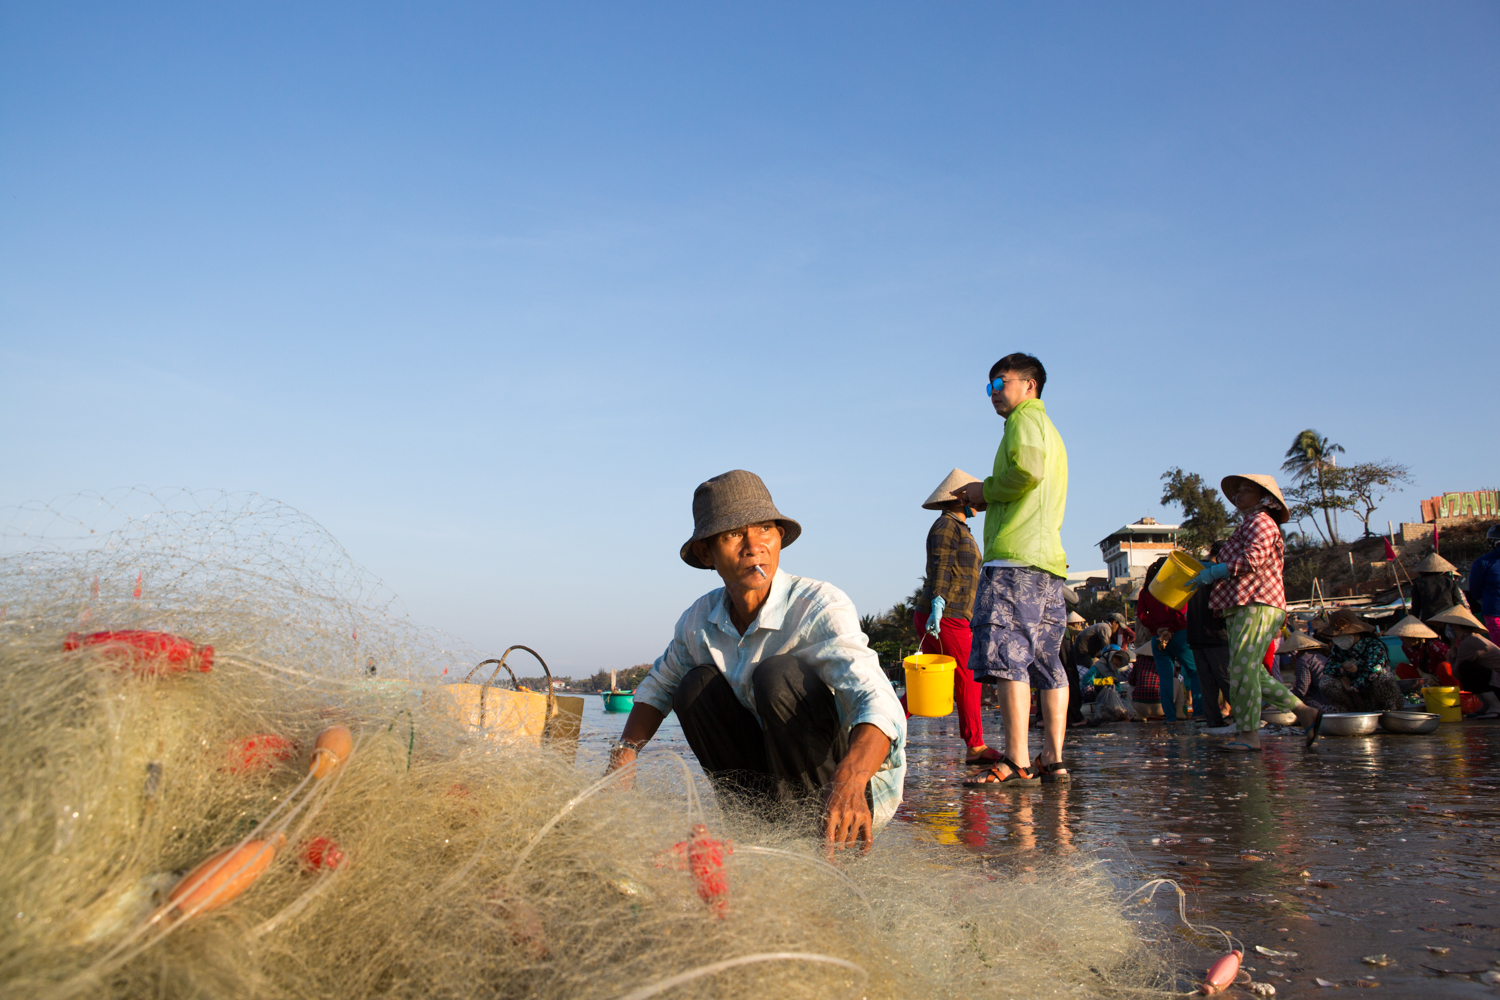 On the beach of Mui Ne, Vietnam, a man untangles his fishing net to collect his daily catch.